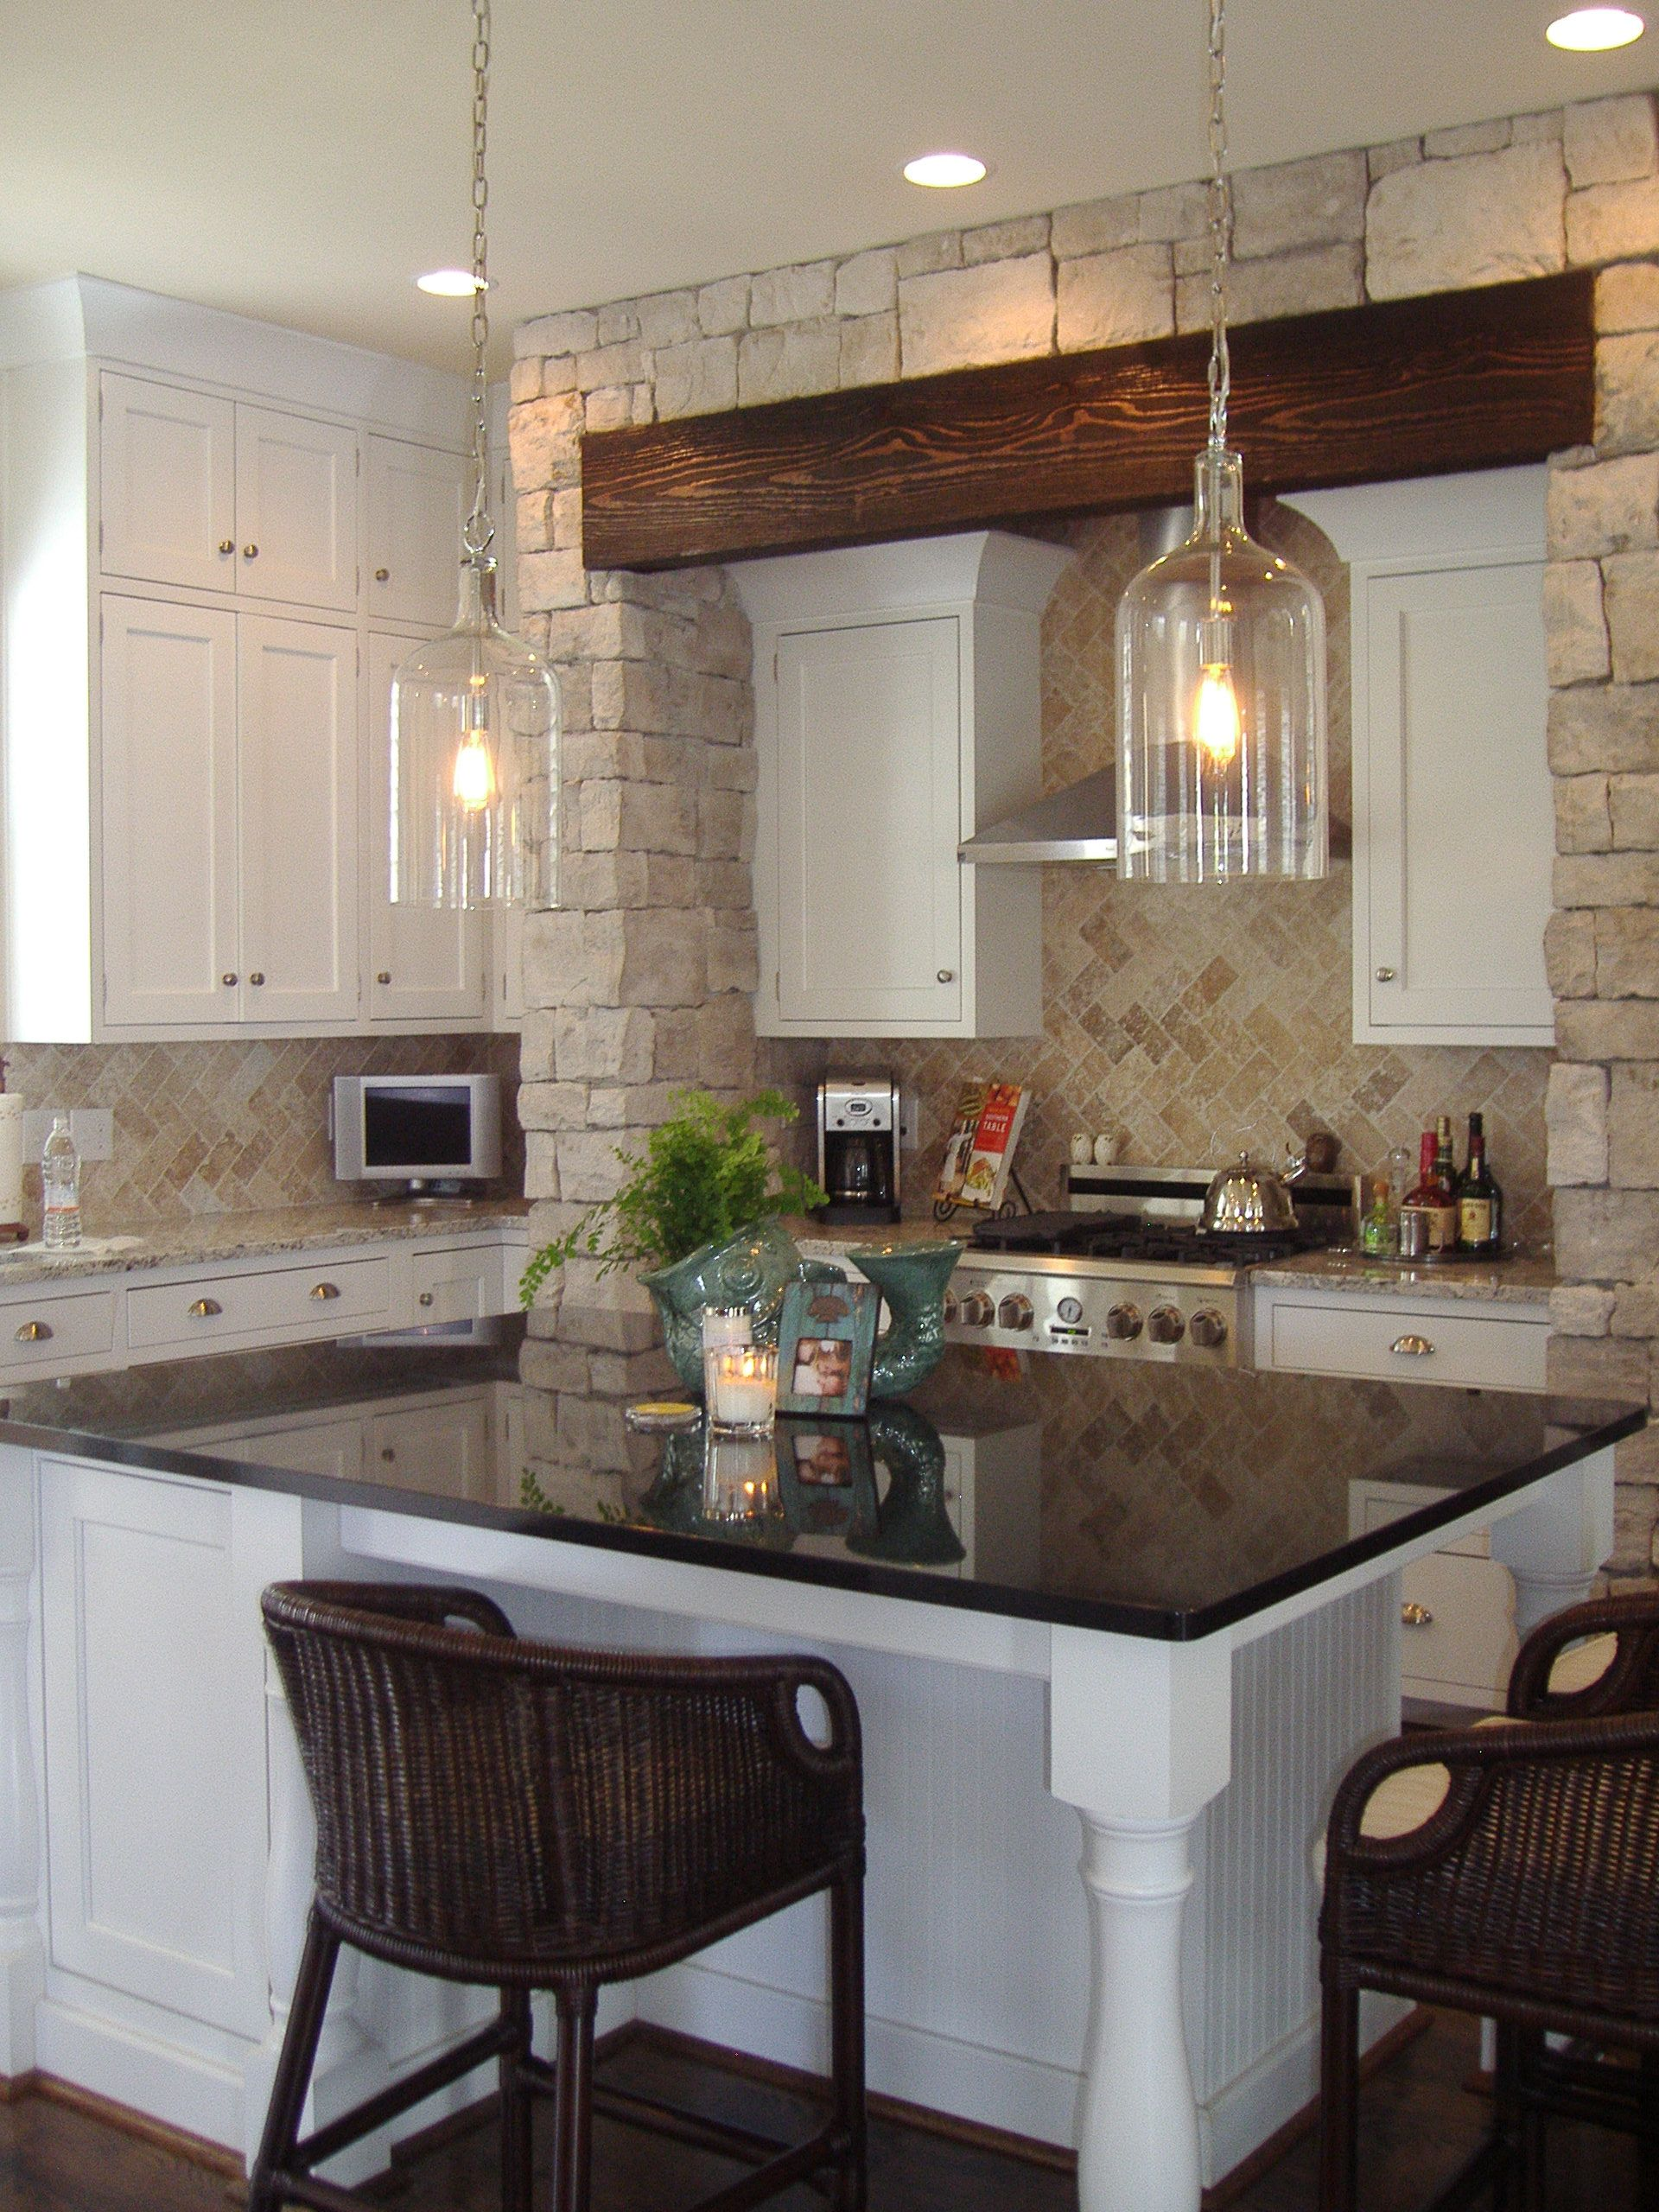 I love this kitchen and the person who lives there!